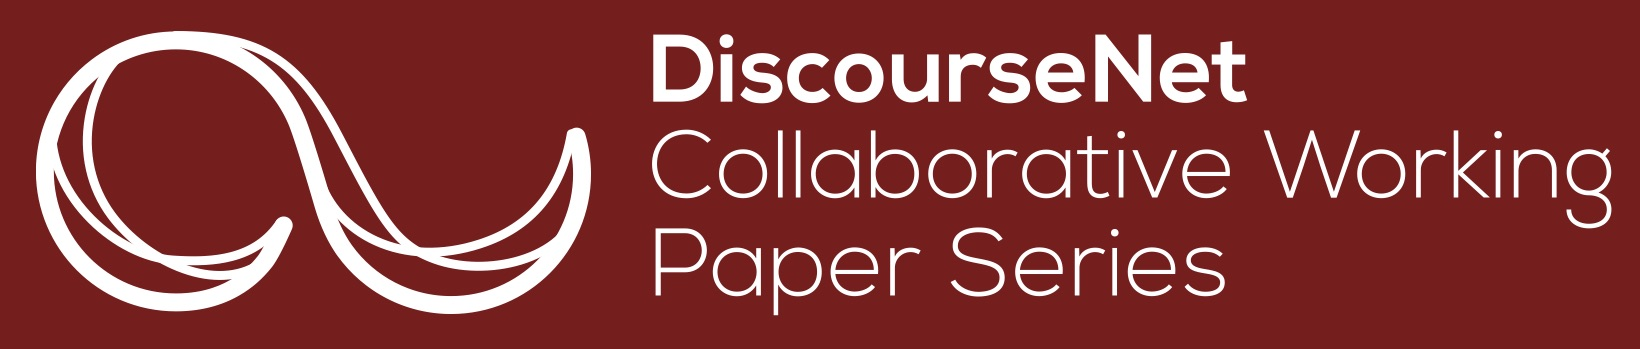 DiscourseNet Collaborative Working Paper Series